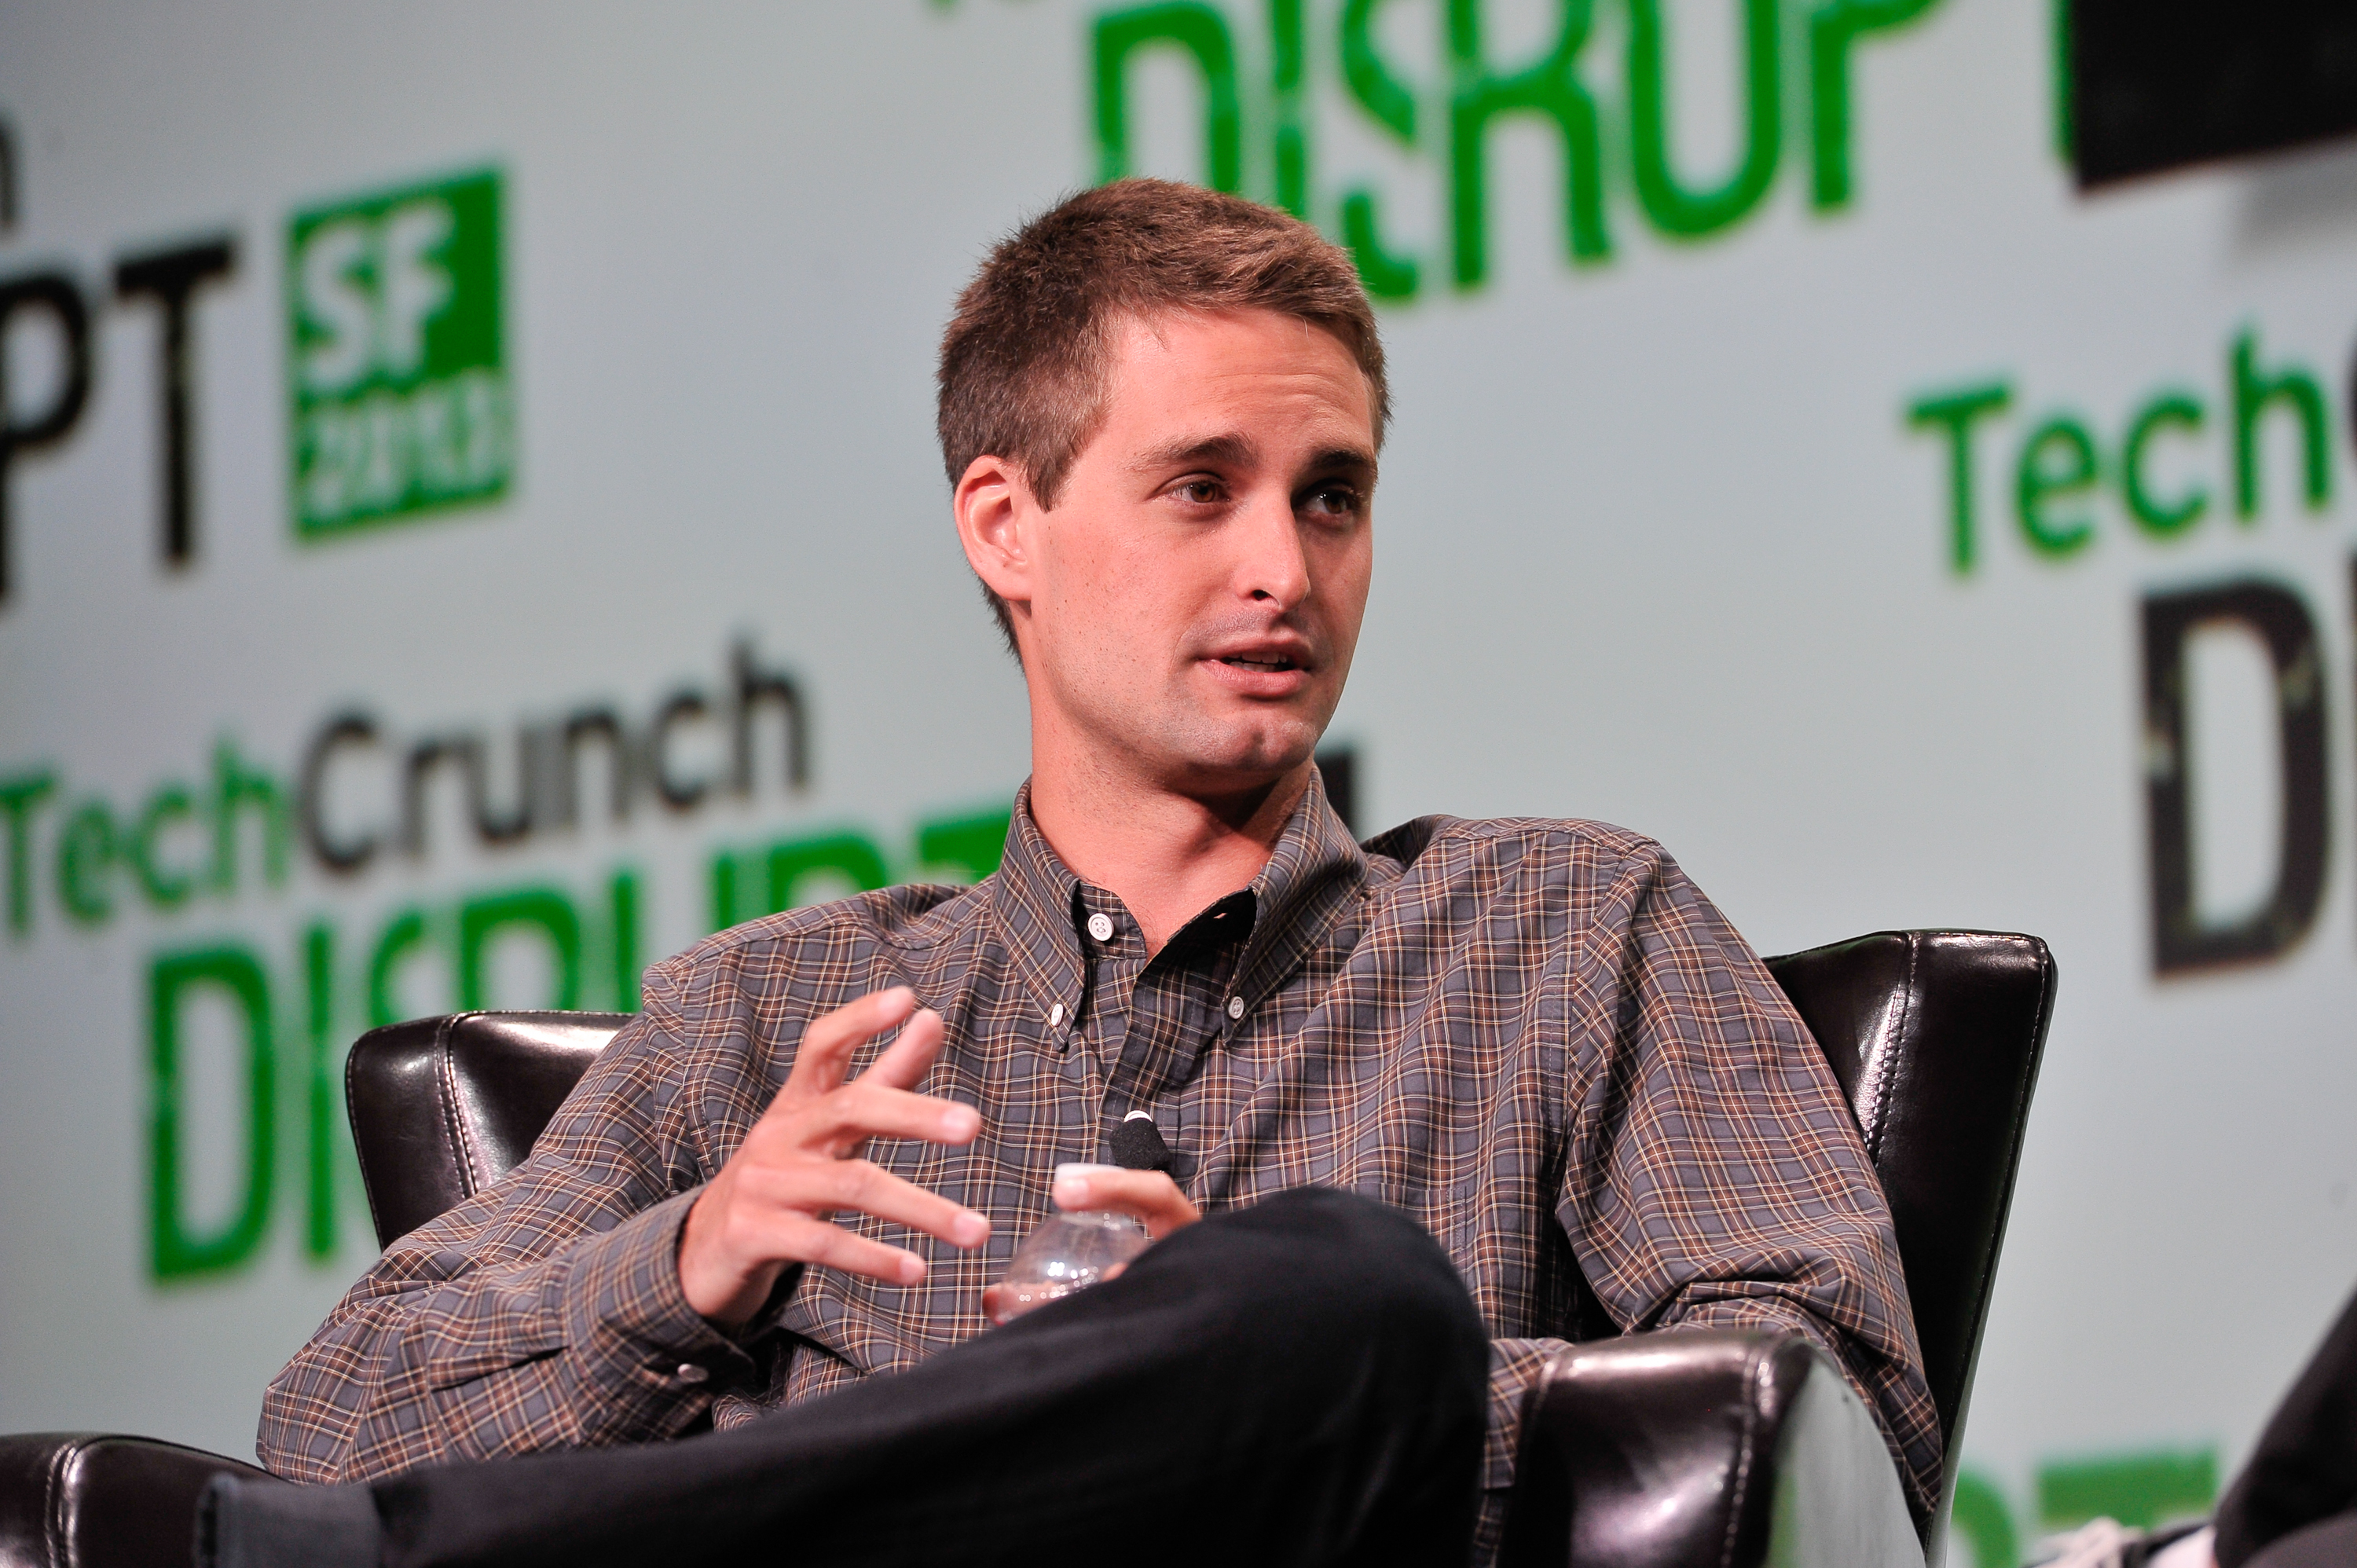 Evan Spiegel of Snapchat attends TechCruch Disrupt SF 2013 at San Francisco Design Center on Sept. 9, 2013 in San Francisco.